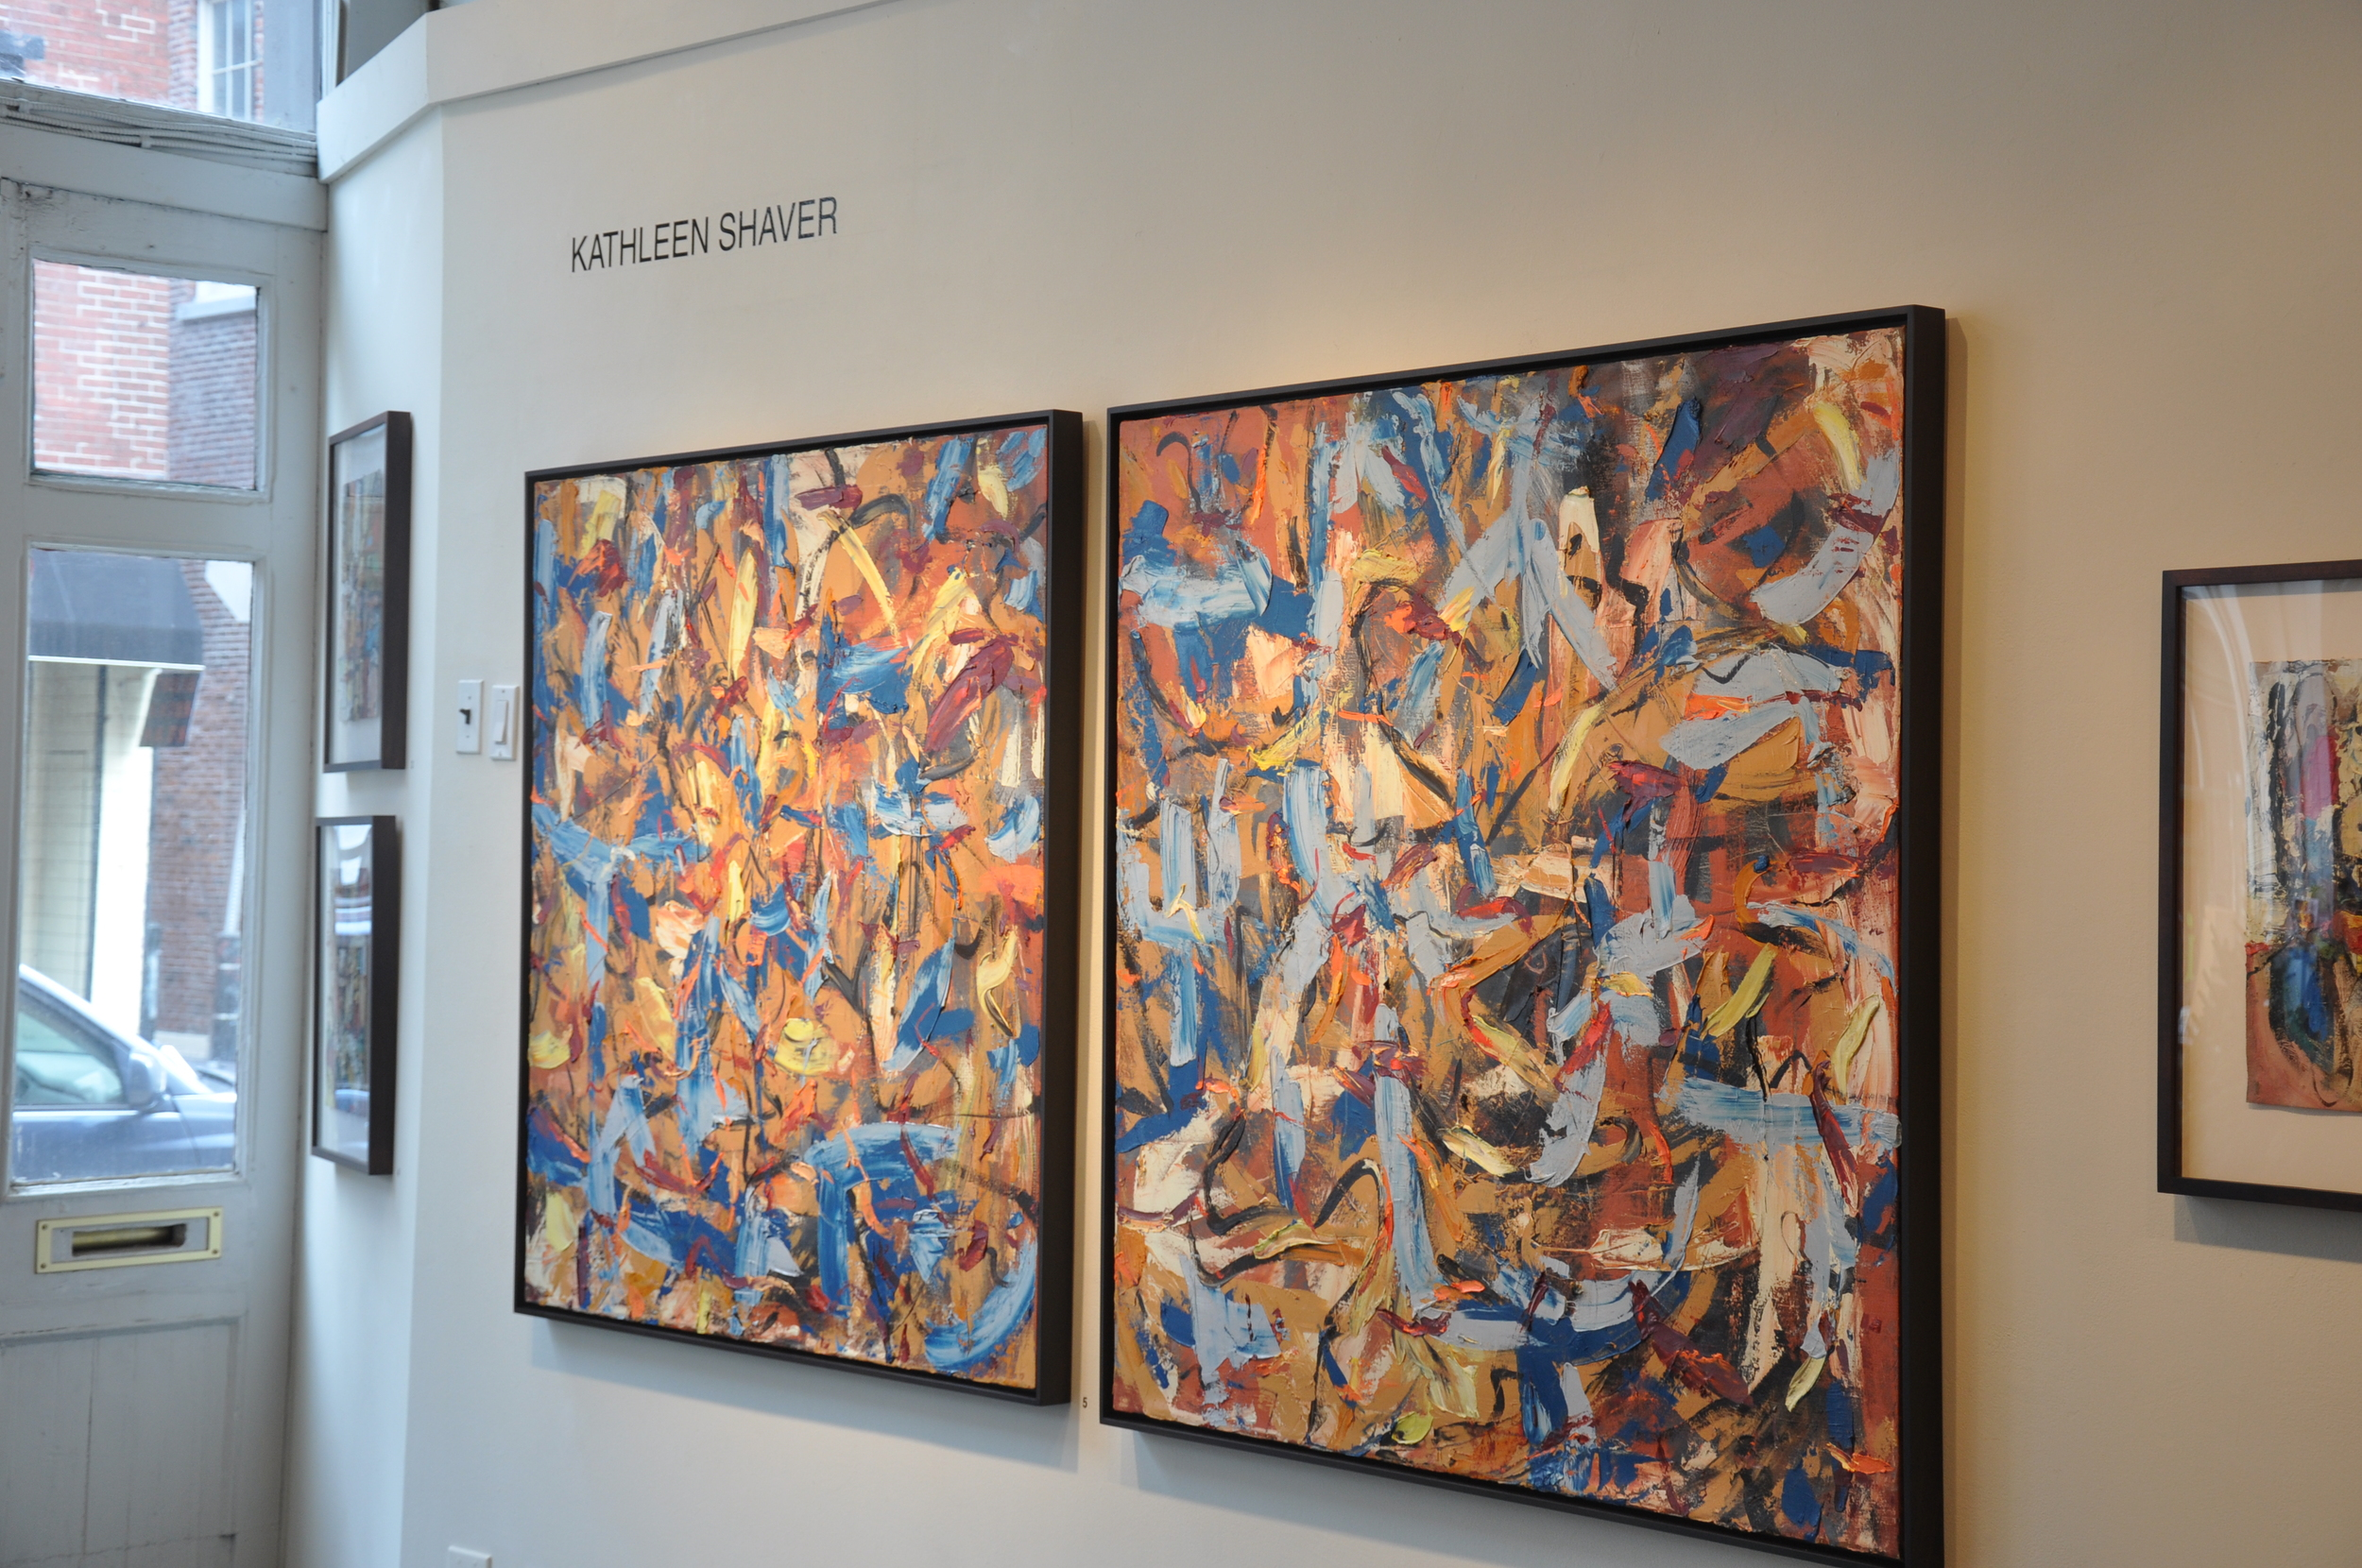 Data I and Data II, exhibited as a diptych at 3rd Street Gallery